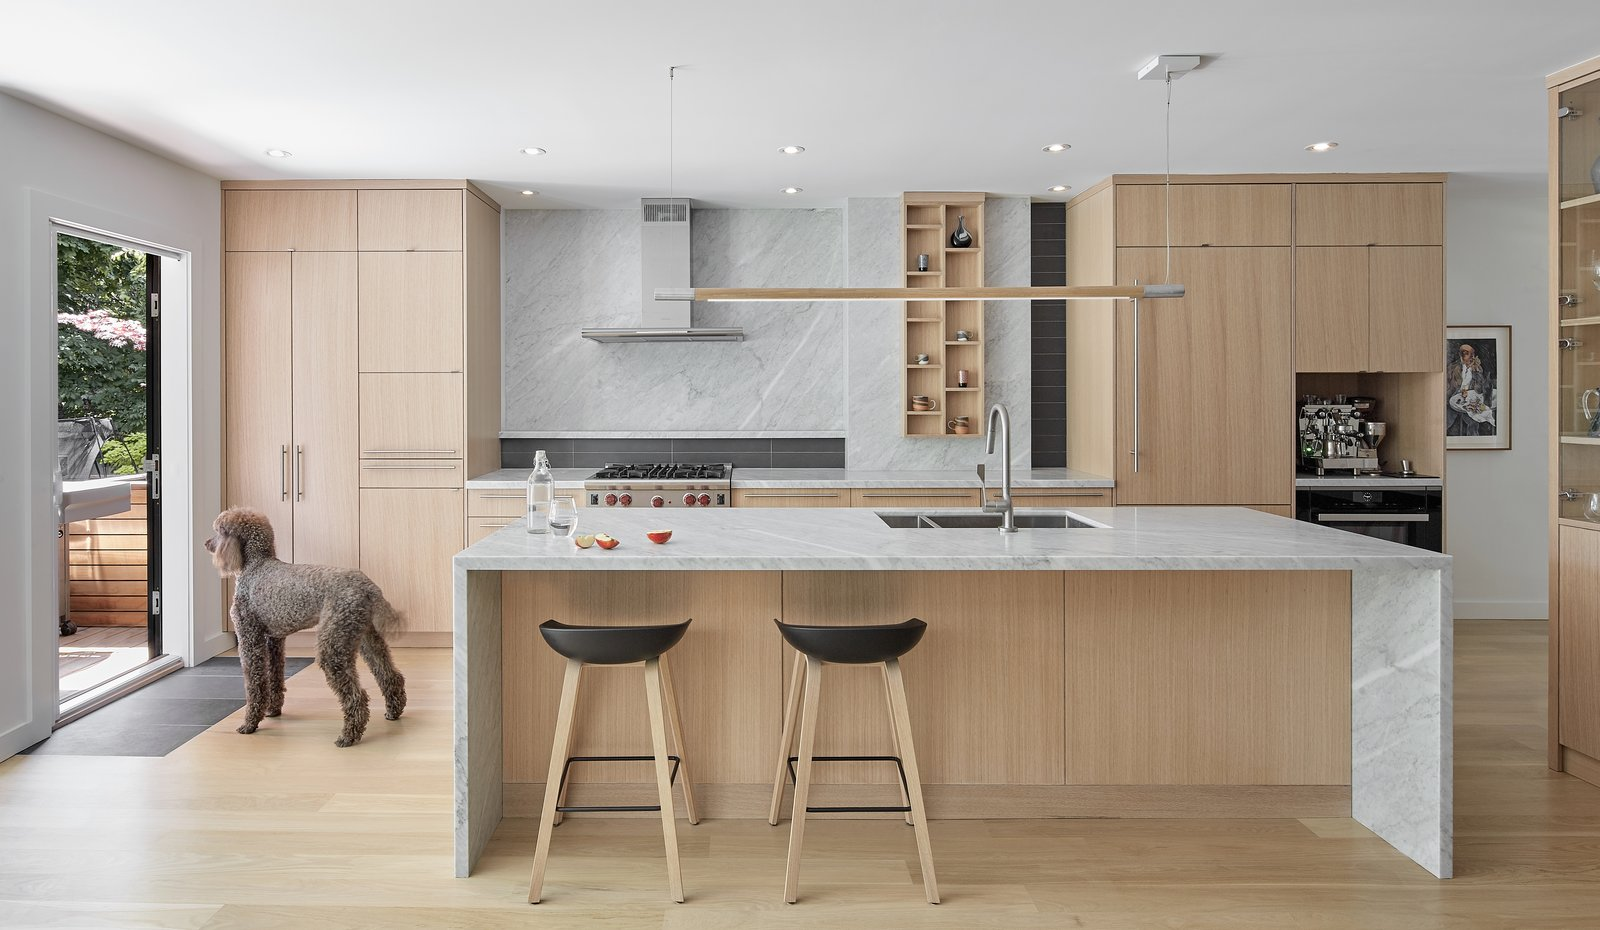 Kitchen, Light Hardwood Floor, Wood Cabinet, Range, Refrigerator, Wood Counter, Undermount Sink, Beverage Center, Stone Slab Backsplashe, Marble Counter, and Pendant Lighting Kitchen  North Toronto Addition by Asquith Architecture